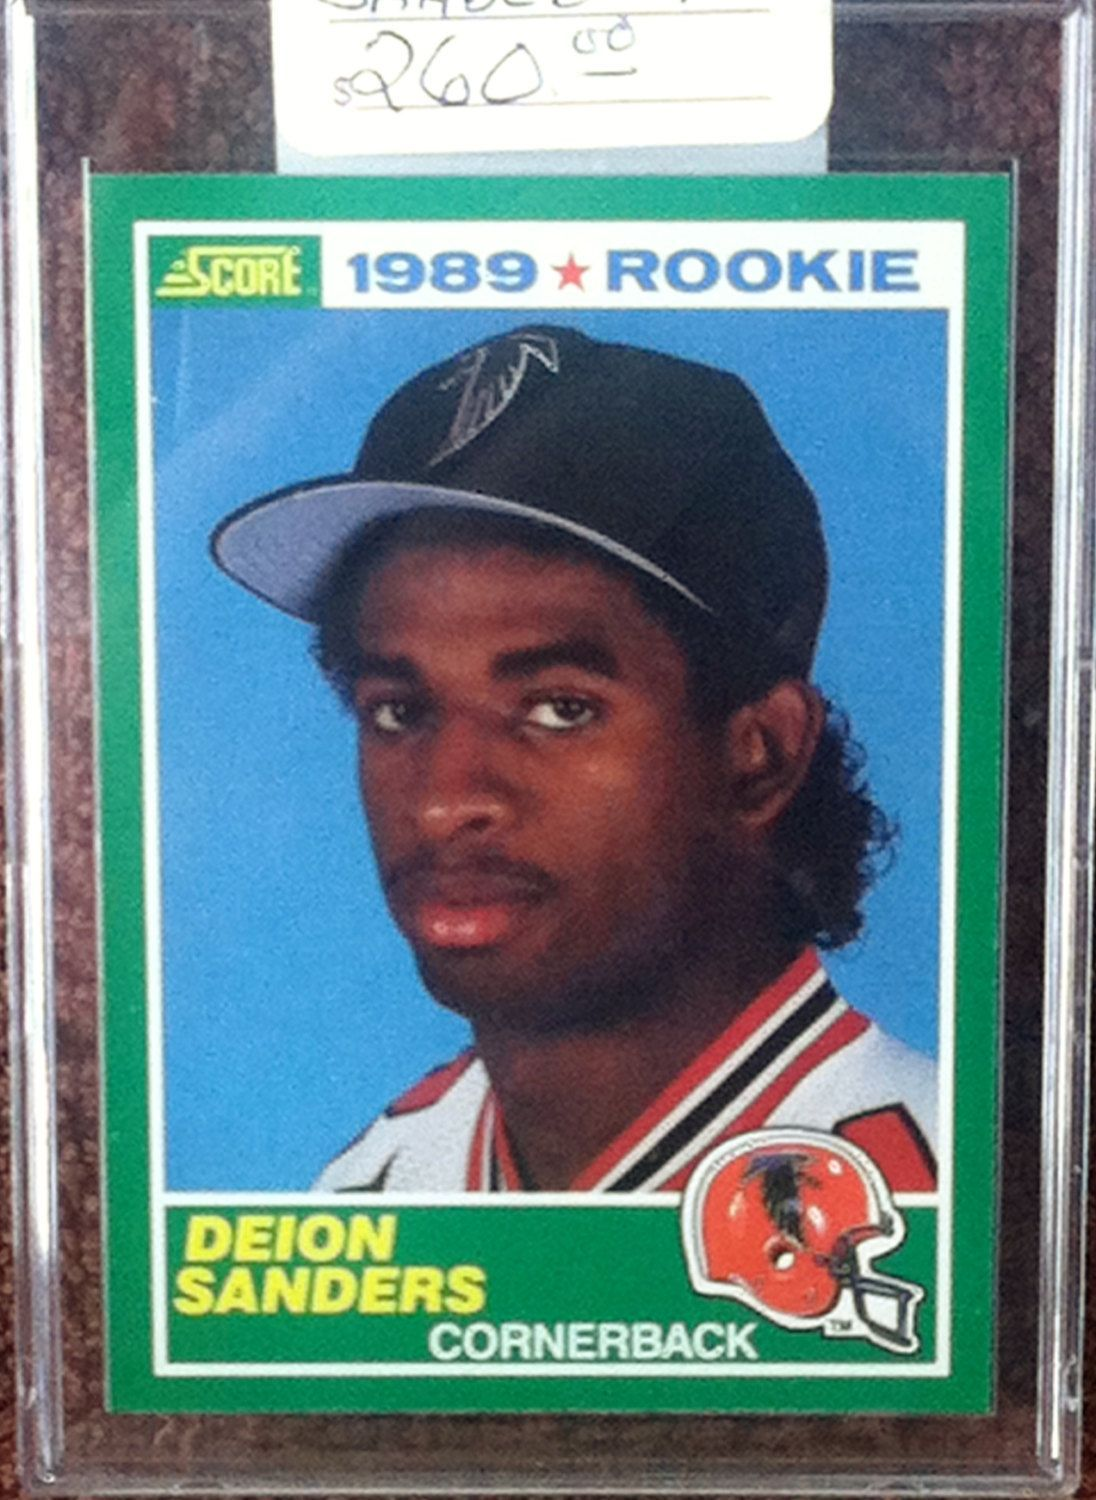 Deion Sanders 1989 Score Rookie Card 246 Etsy in 2020